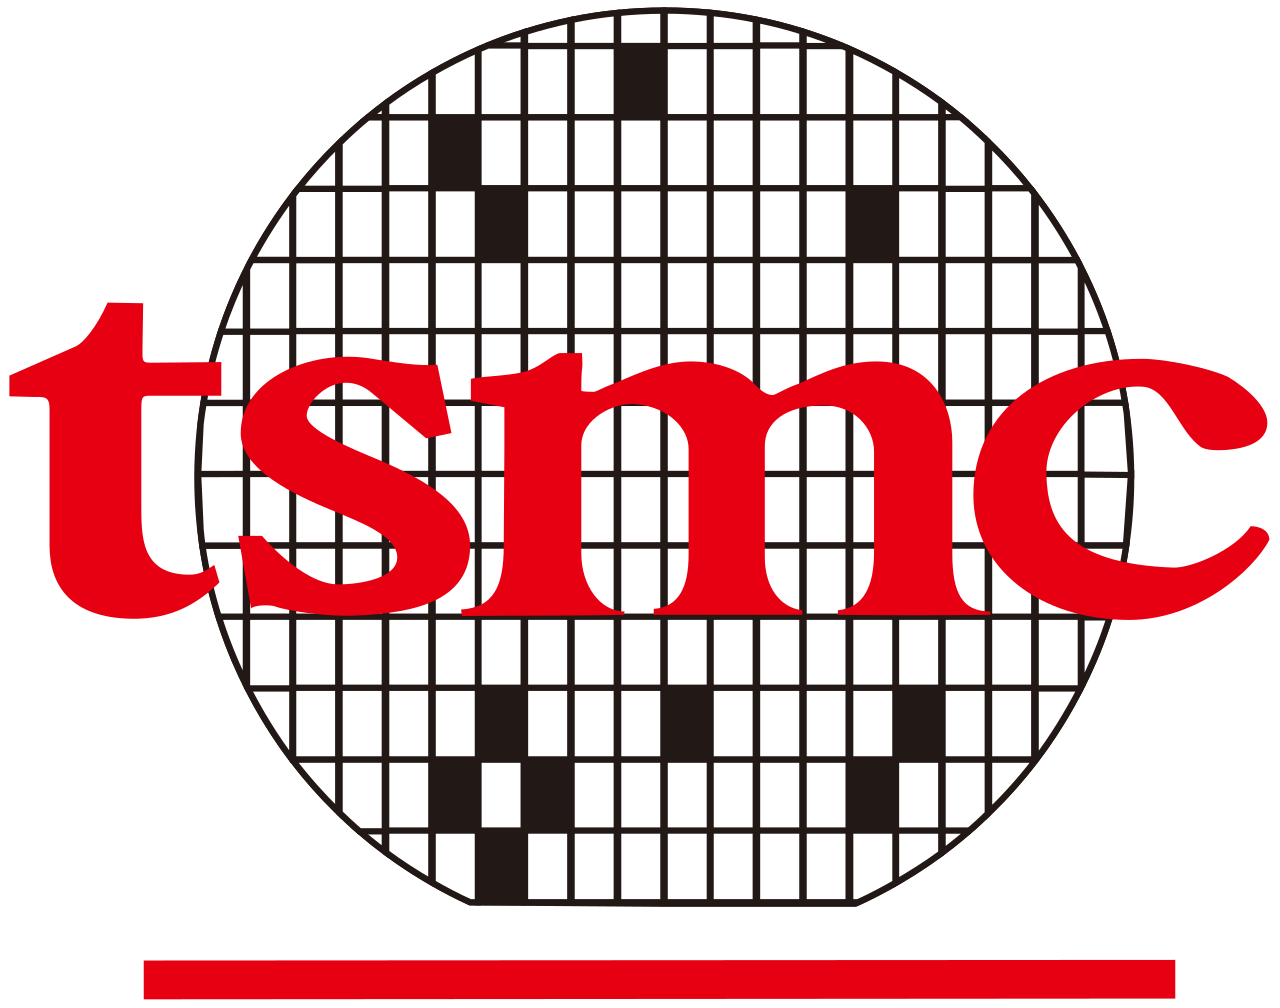 TSMC has made a major breakthrough in the 2nm process and will conduct trial production in 2023